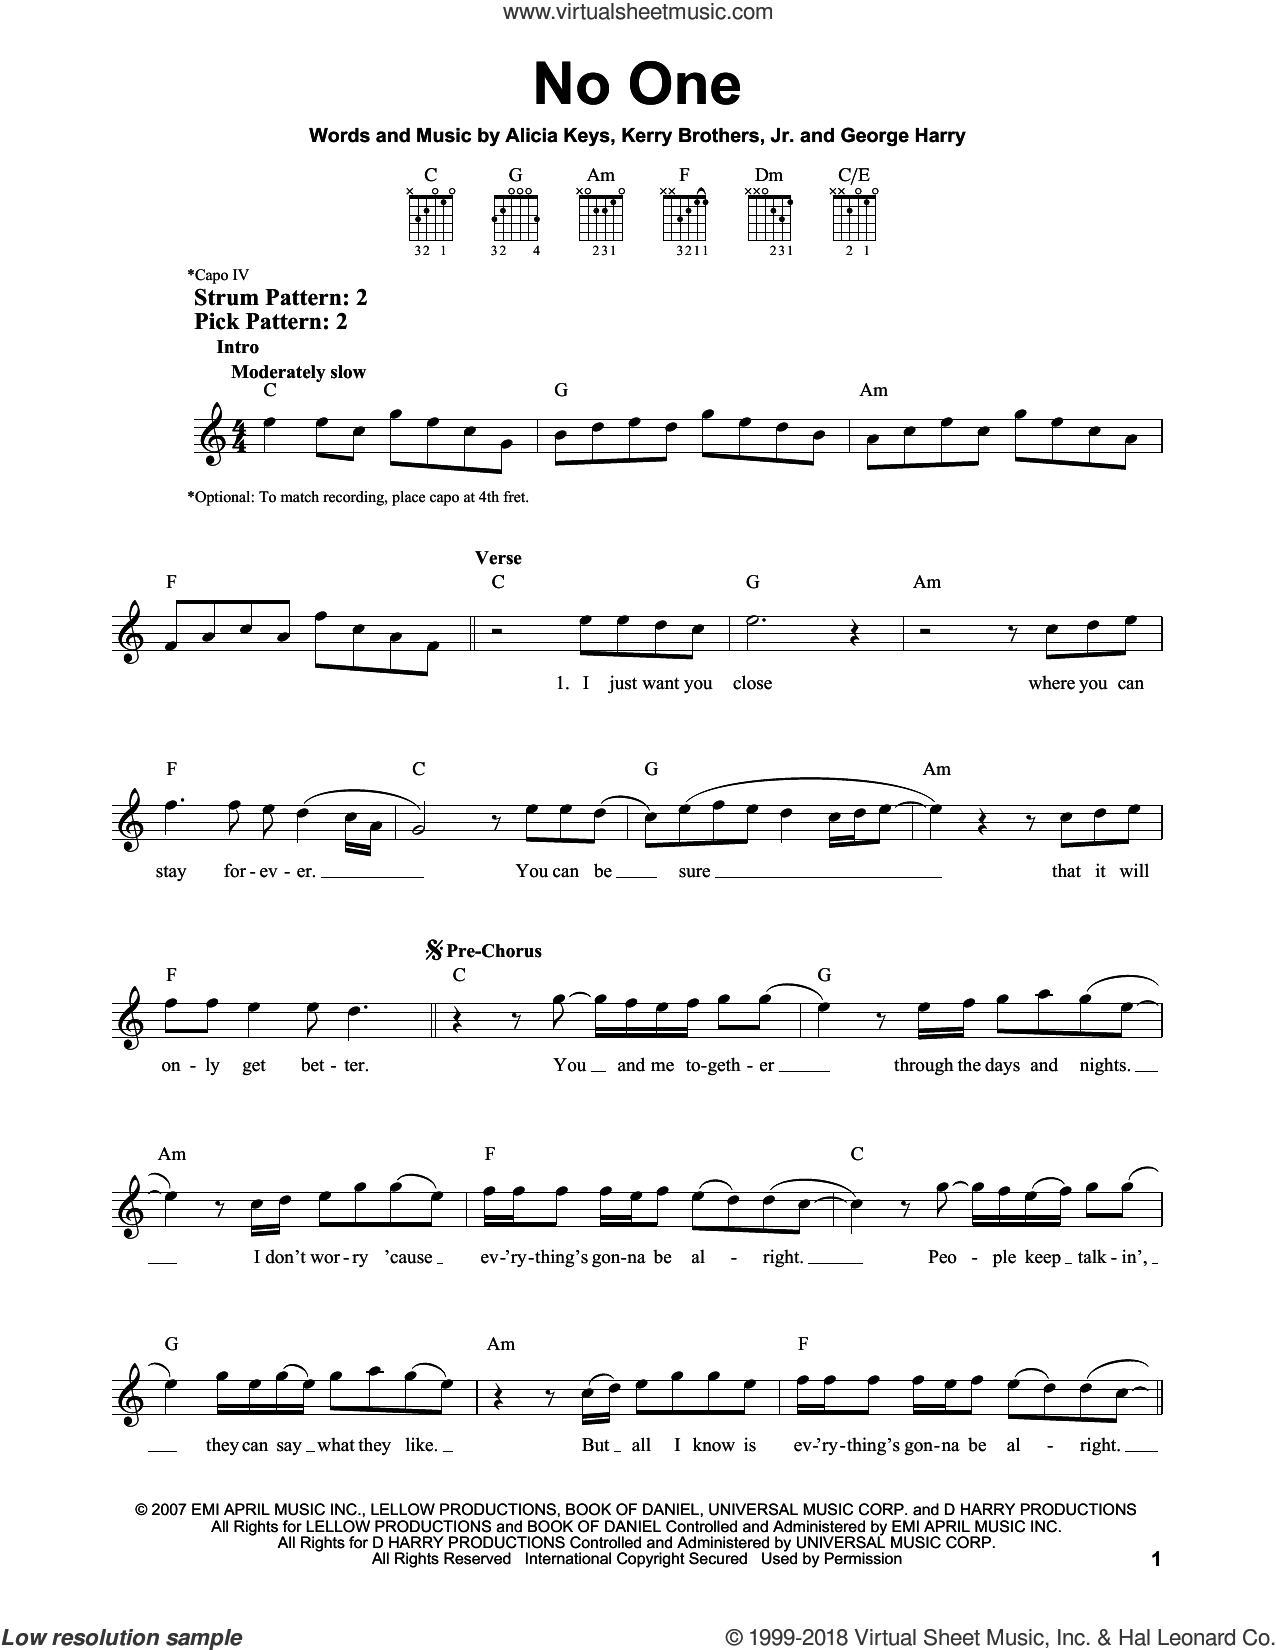 No One sheet music for guitar solo (chords) by Alicia Keys, George Harry and Kerry Brothers, easy guitar (chords)